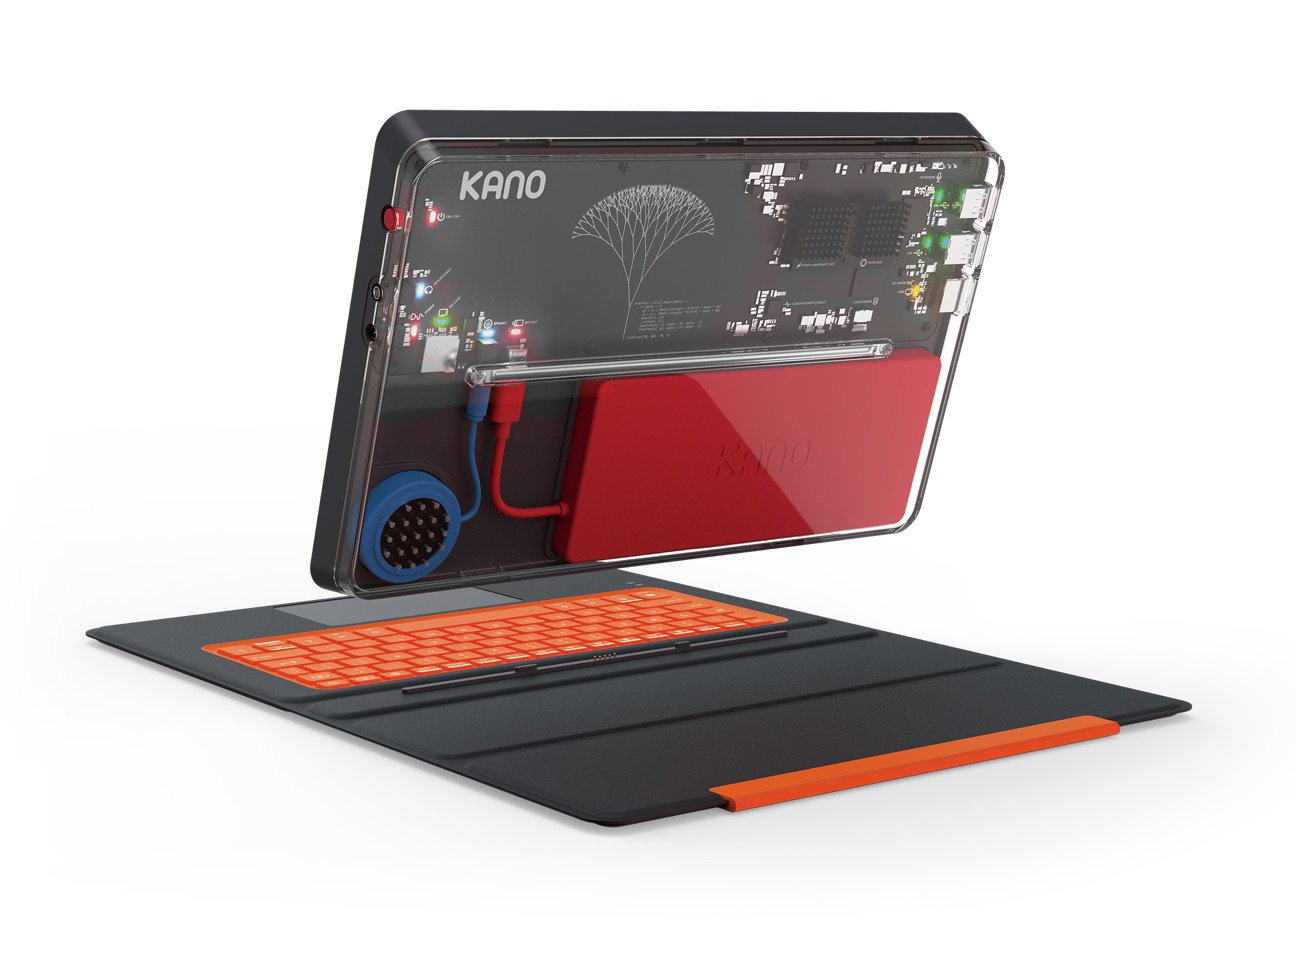 Kano PC tech specs and FAQ